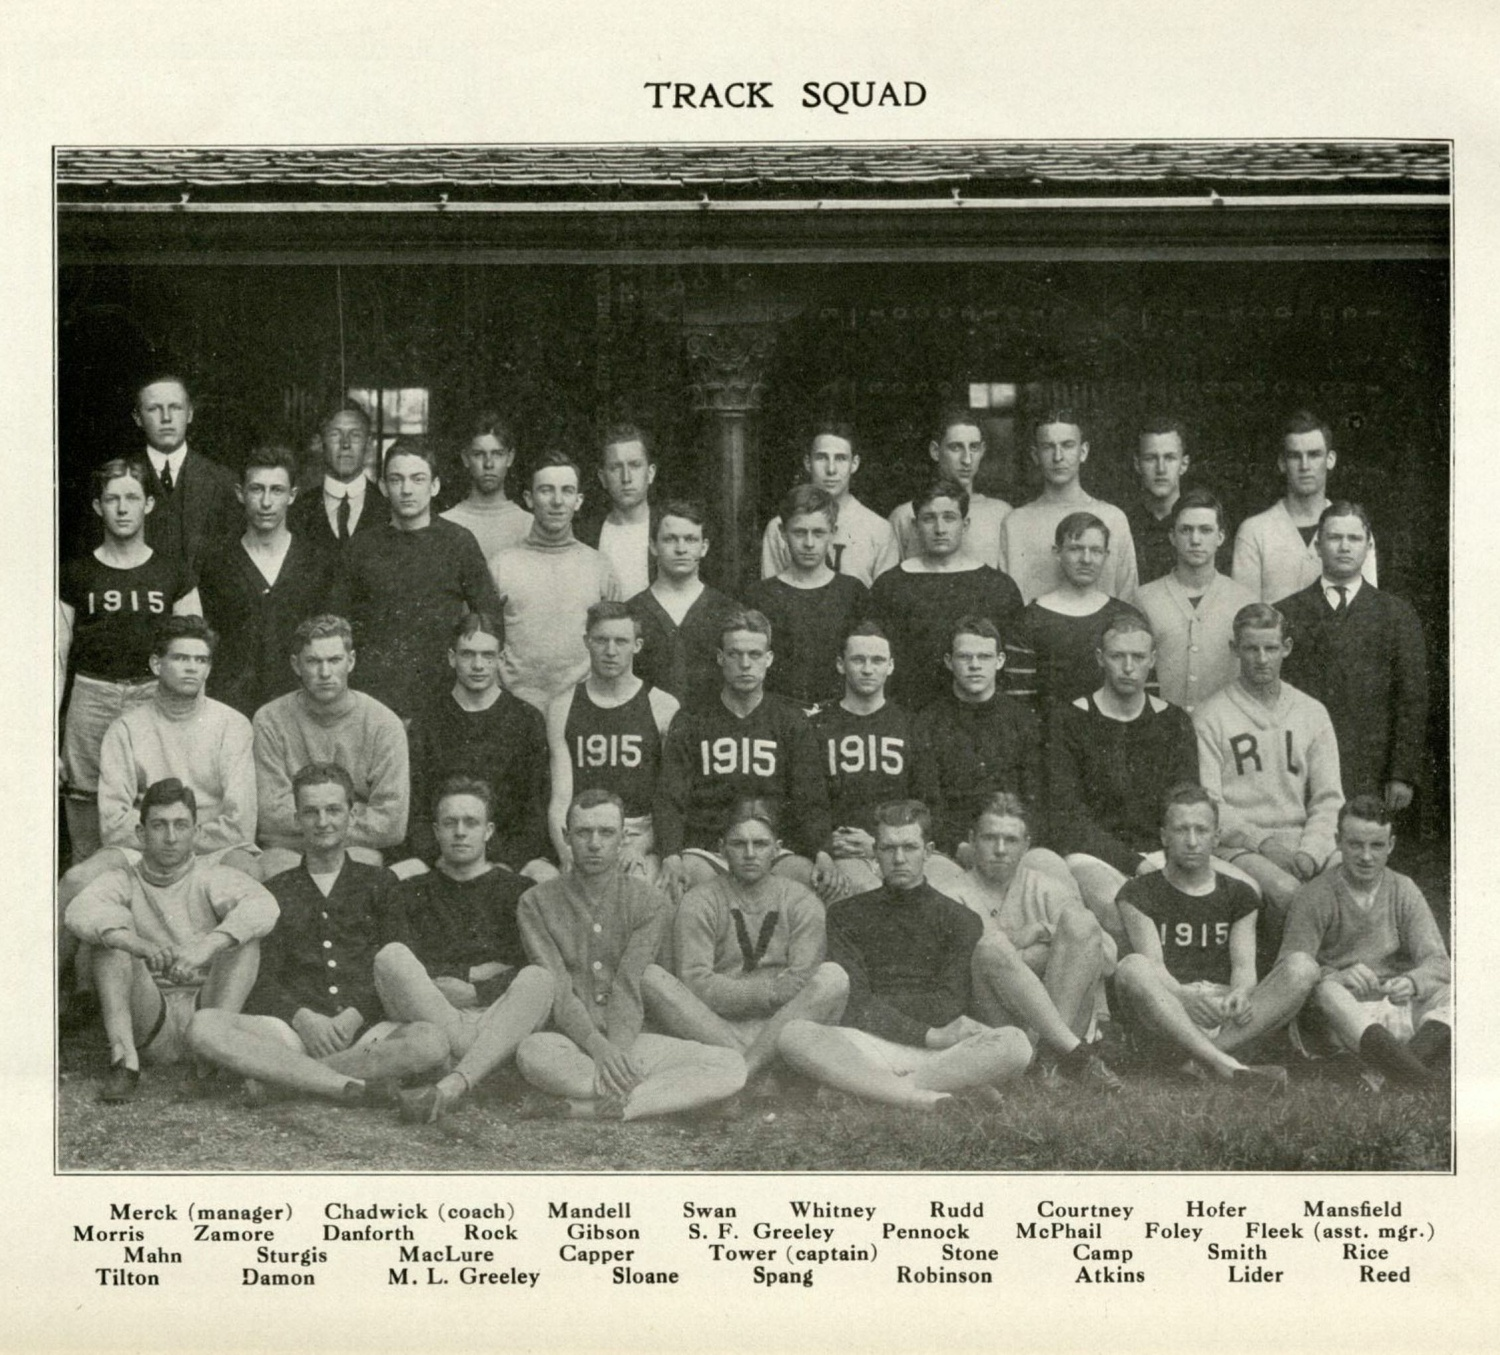 John C. Rock, who attended Harvard for college and medical school, spent his entire career studying reproduction as a faculty member and physician. He is pictured here (second row from back, fourth from left) with his track team.